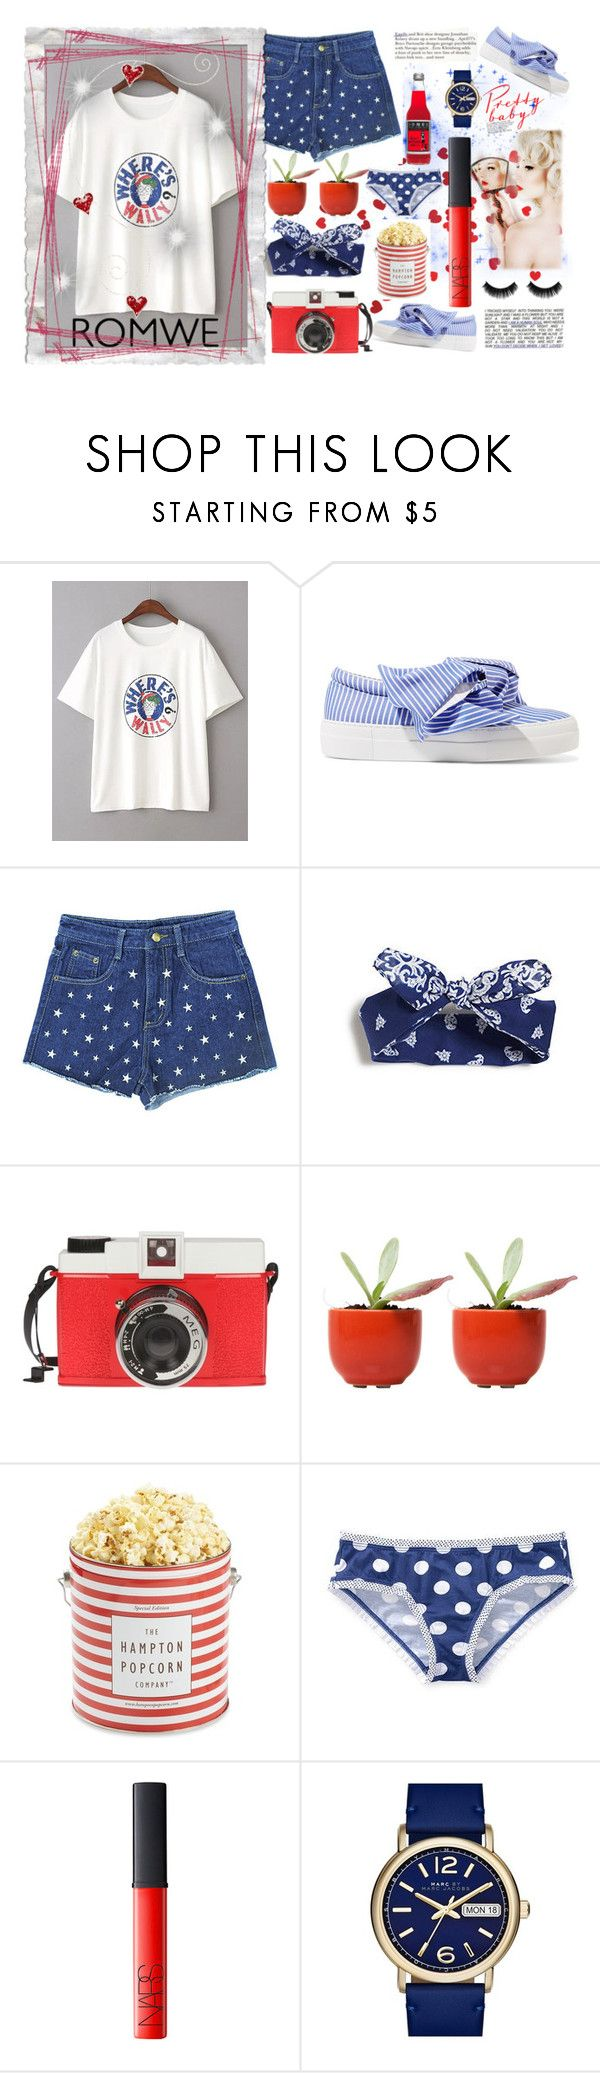 """""""pretty baby"""" by imnotyourstyle on Polyvore featuring moda, Joshua's, Edition, Dot & Bo, The Hampton Popcorn Company, Victoria's Secret, NARS Cosmetics y Marc by Marc Jacobs"""